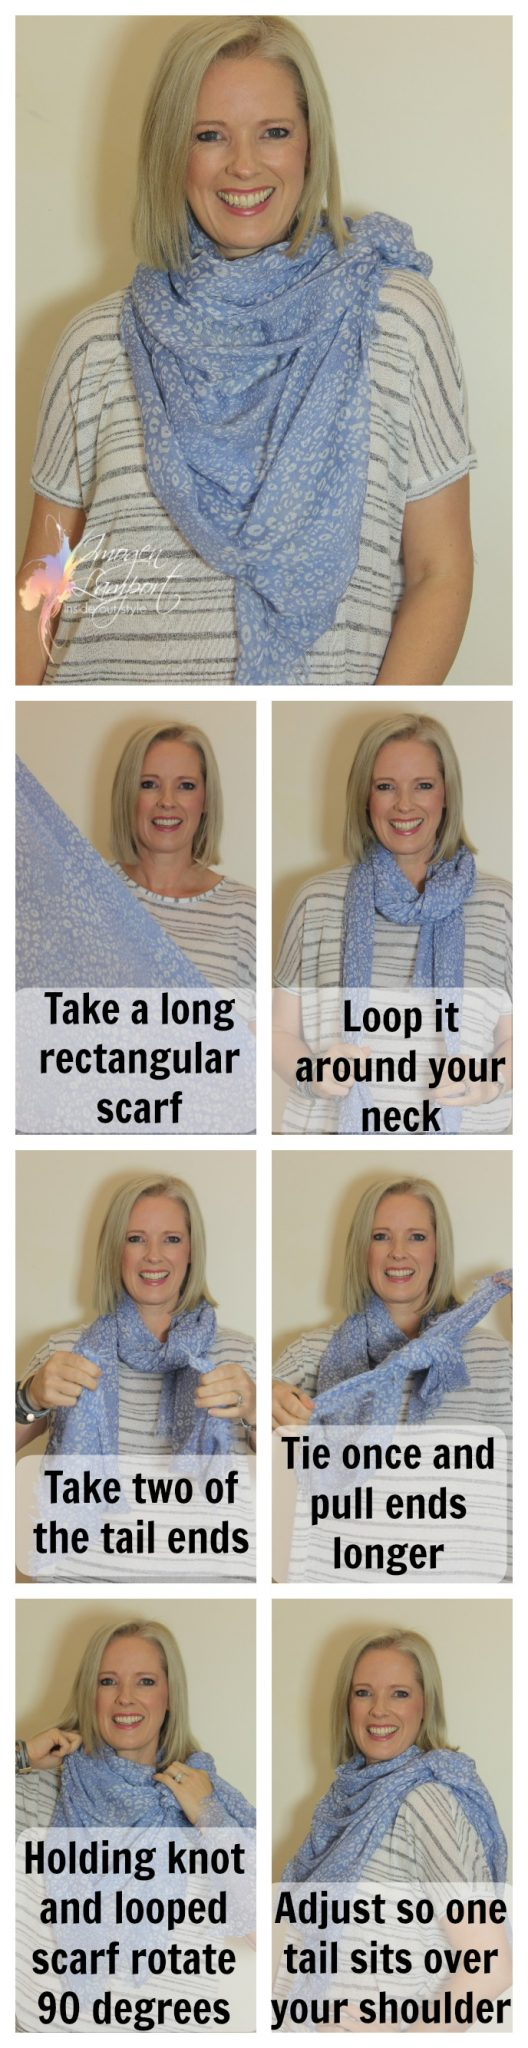 Inside Out Style: How to tie a rectangular scarf